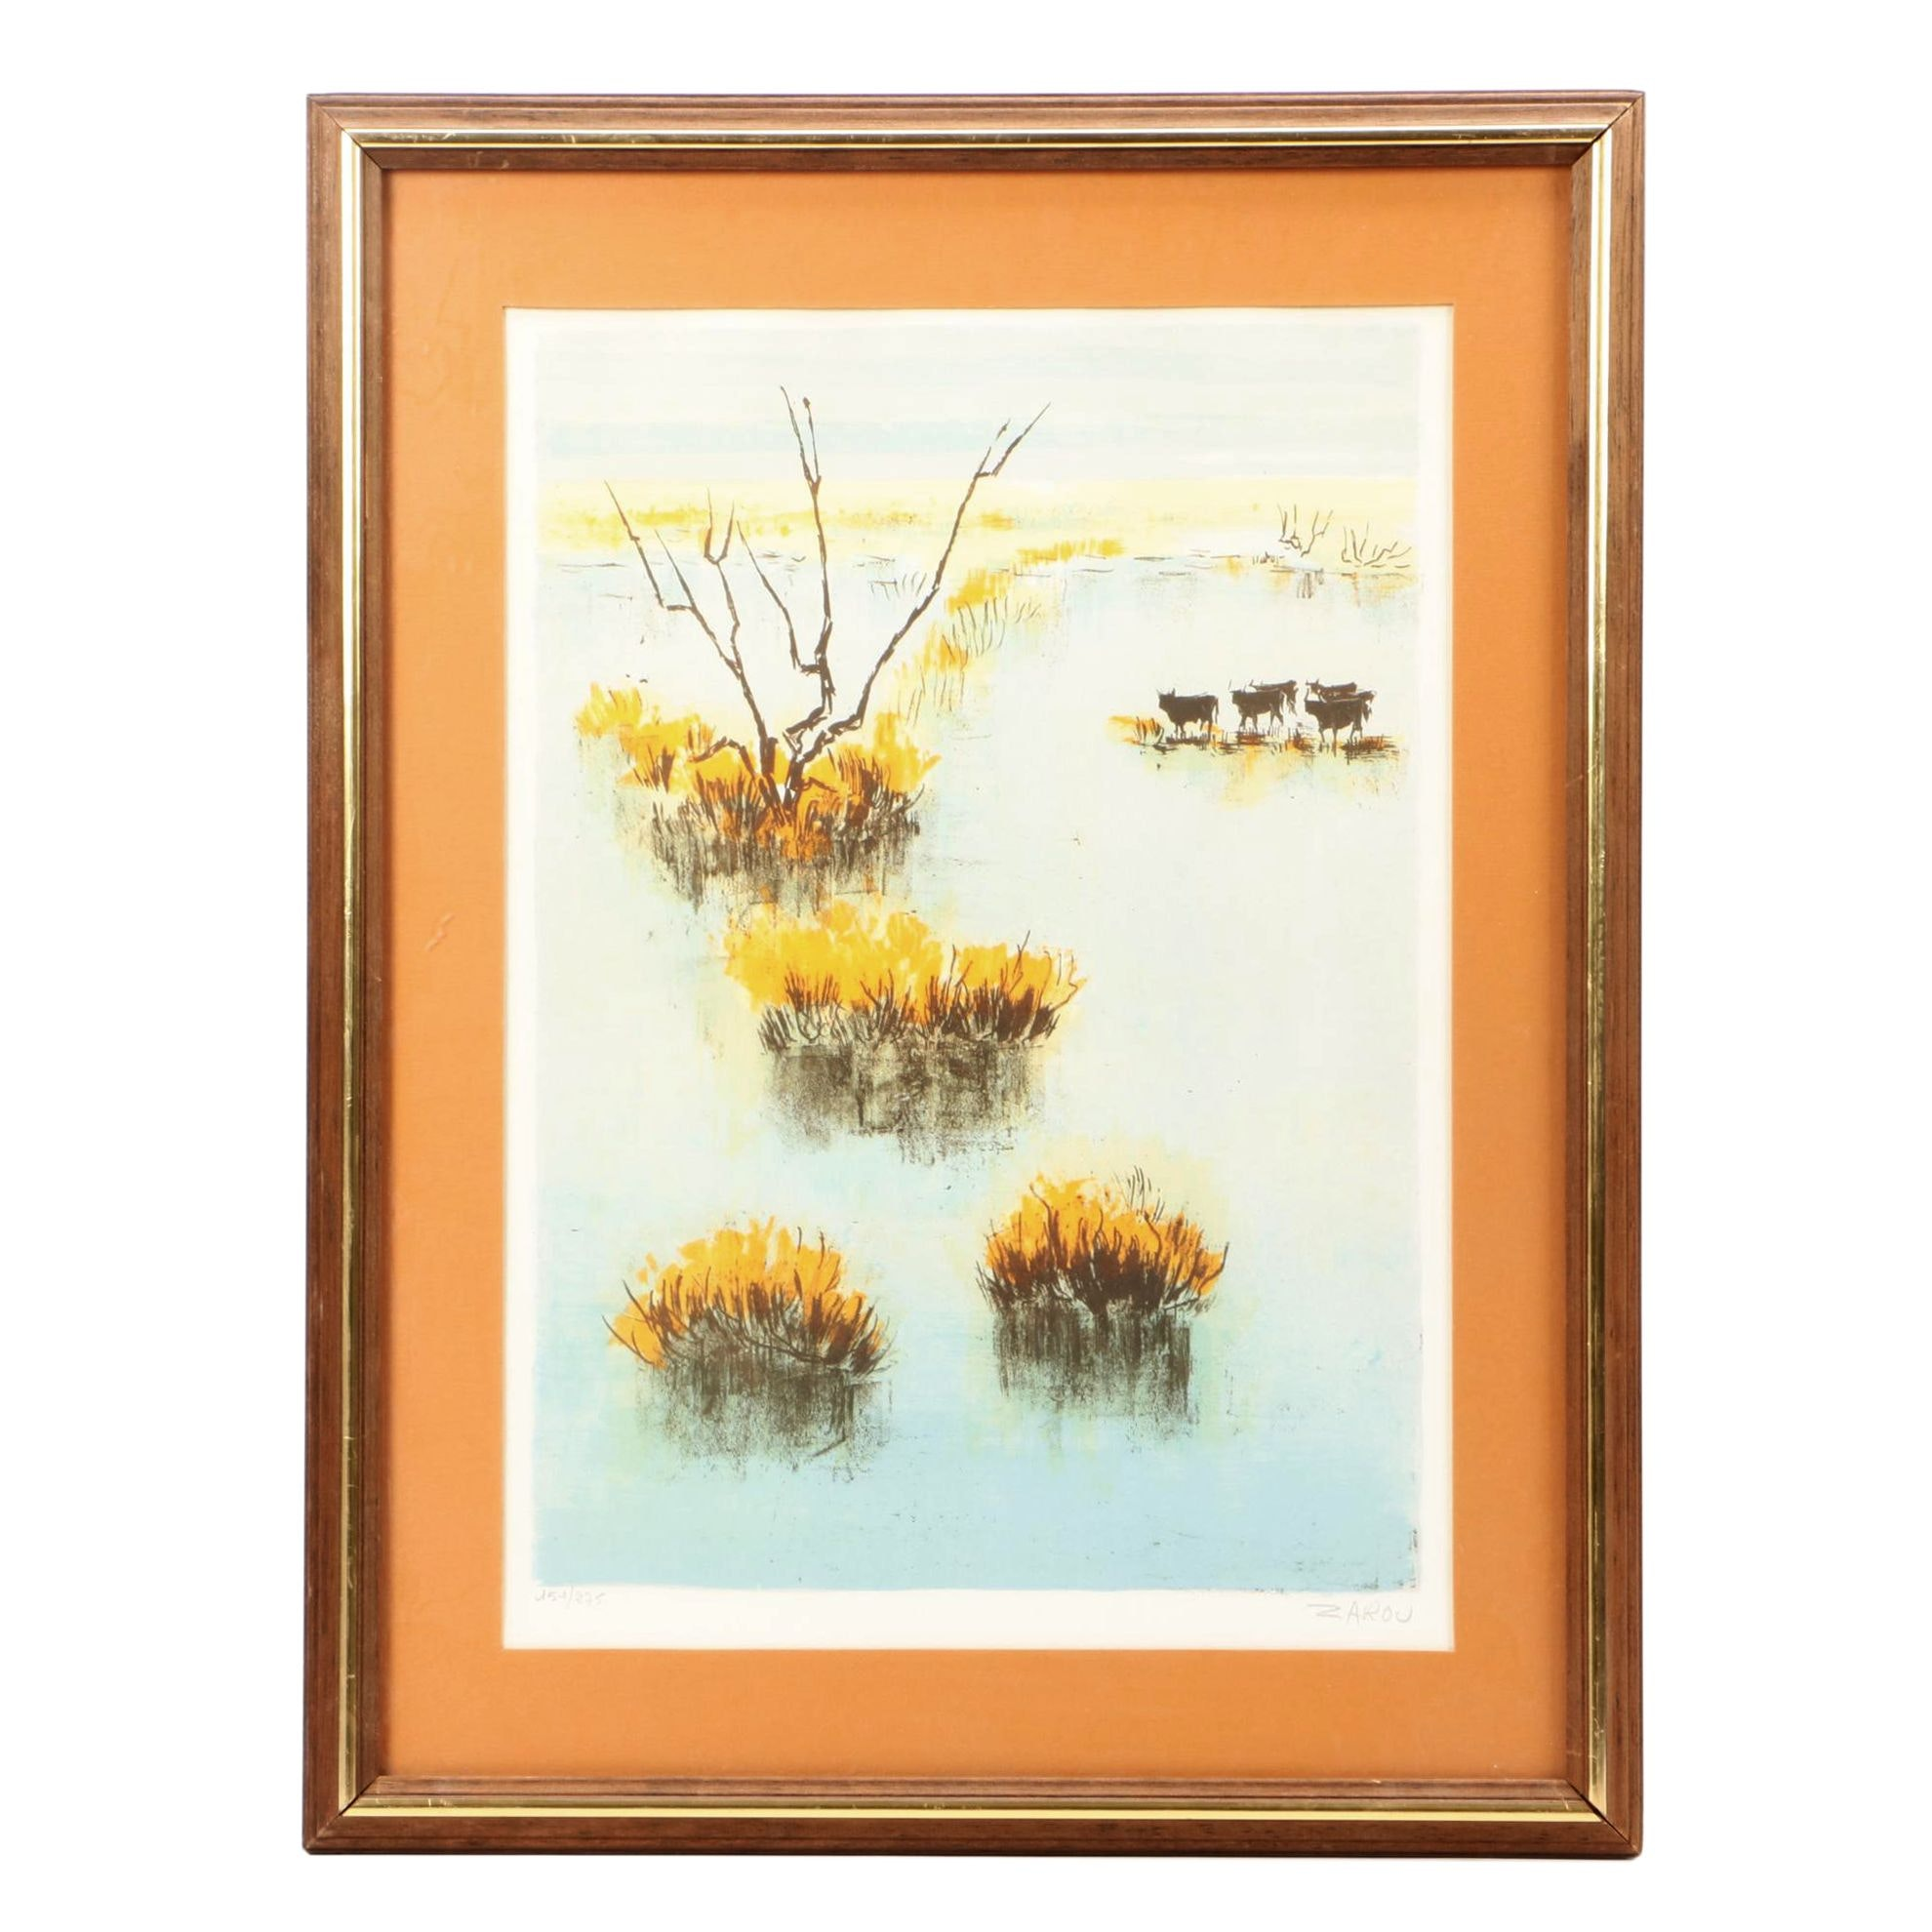 Victor Zarou Limited Edition Lithograph of Cattle in Marshy Landscape